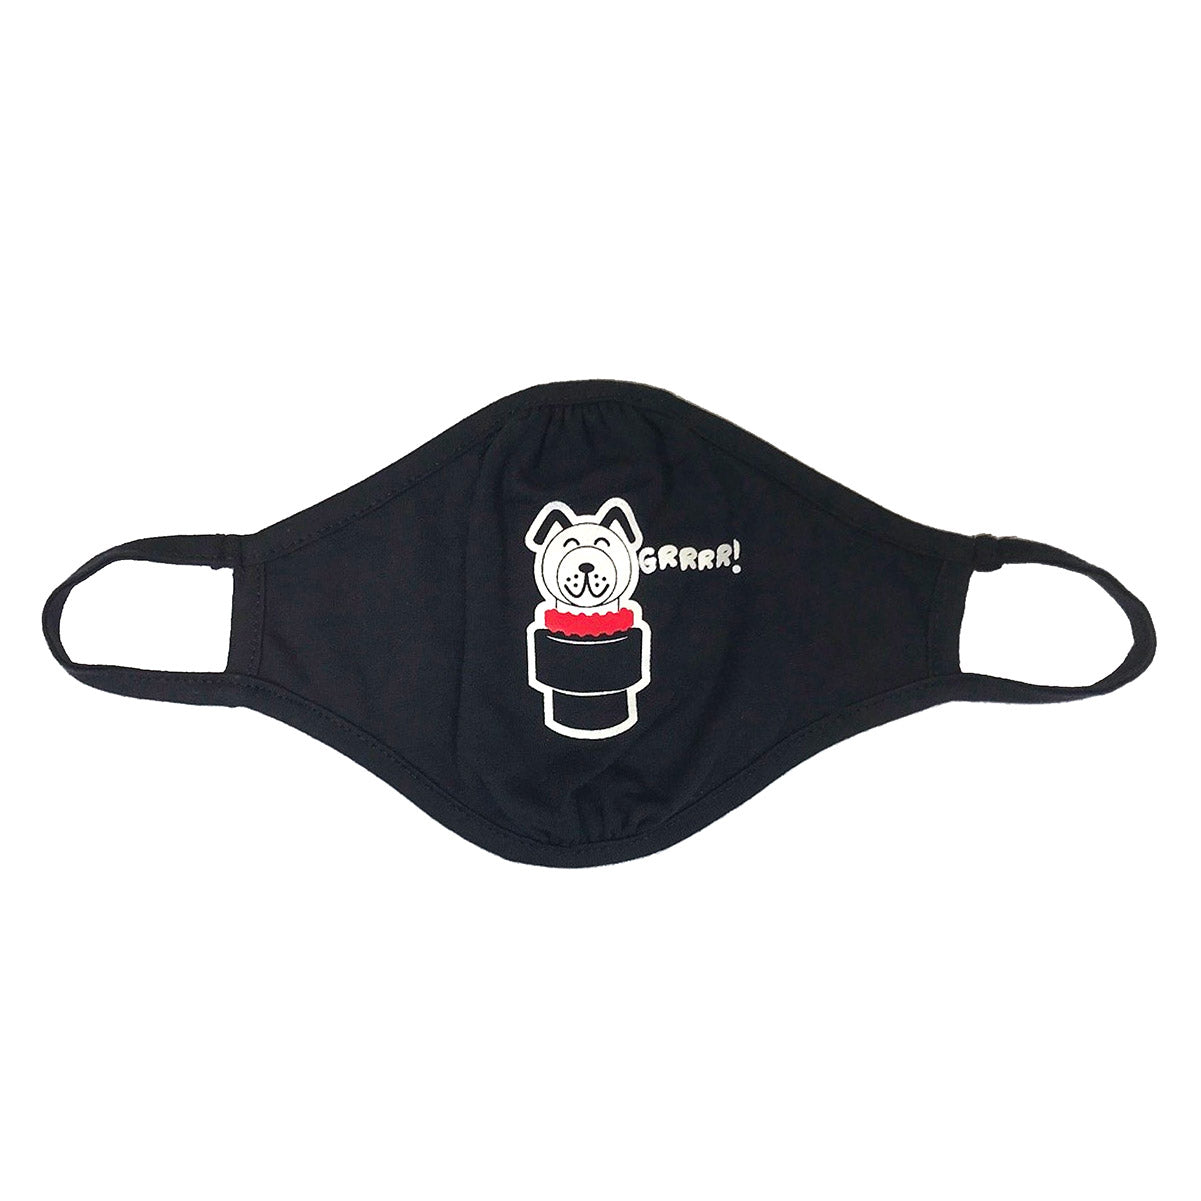 Shop Ajaxx63 Grrr Dog Sports Face Mask 1 available at MensUnderwear.io